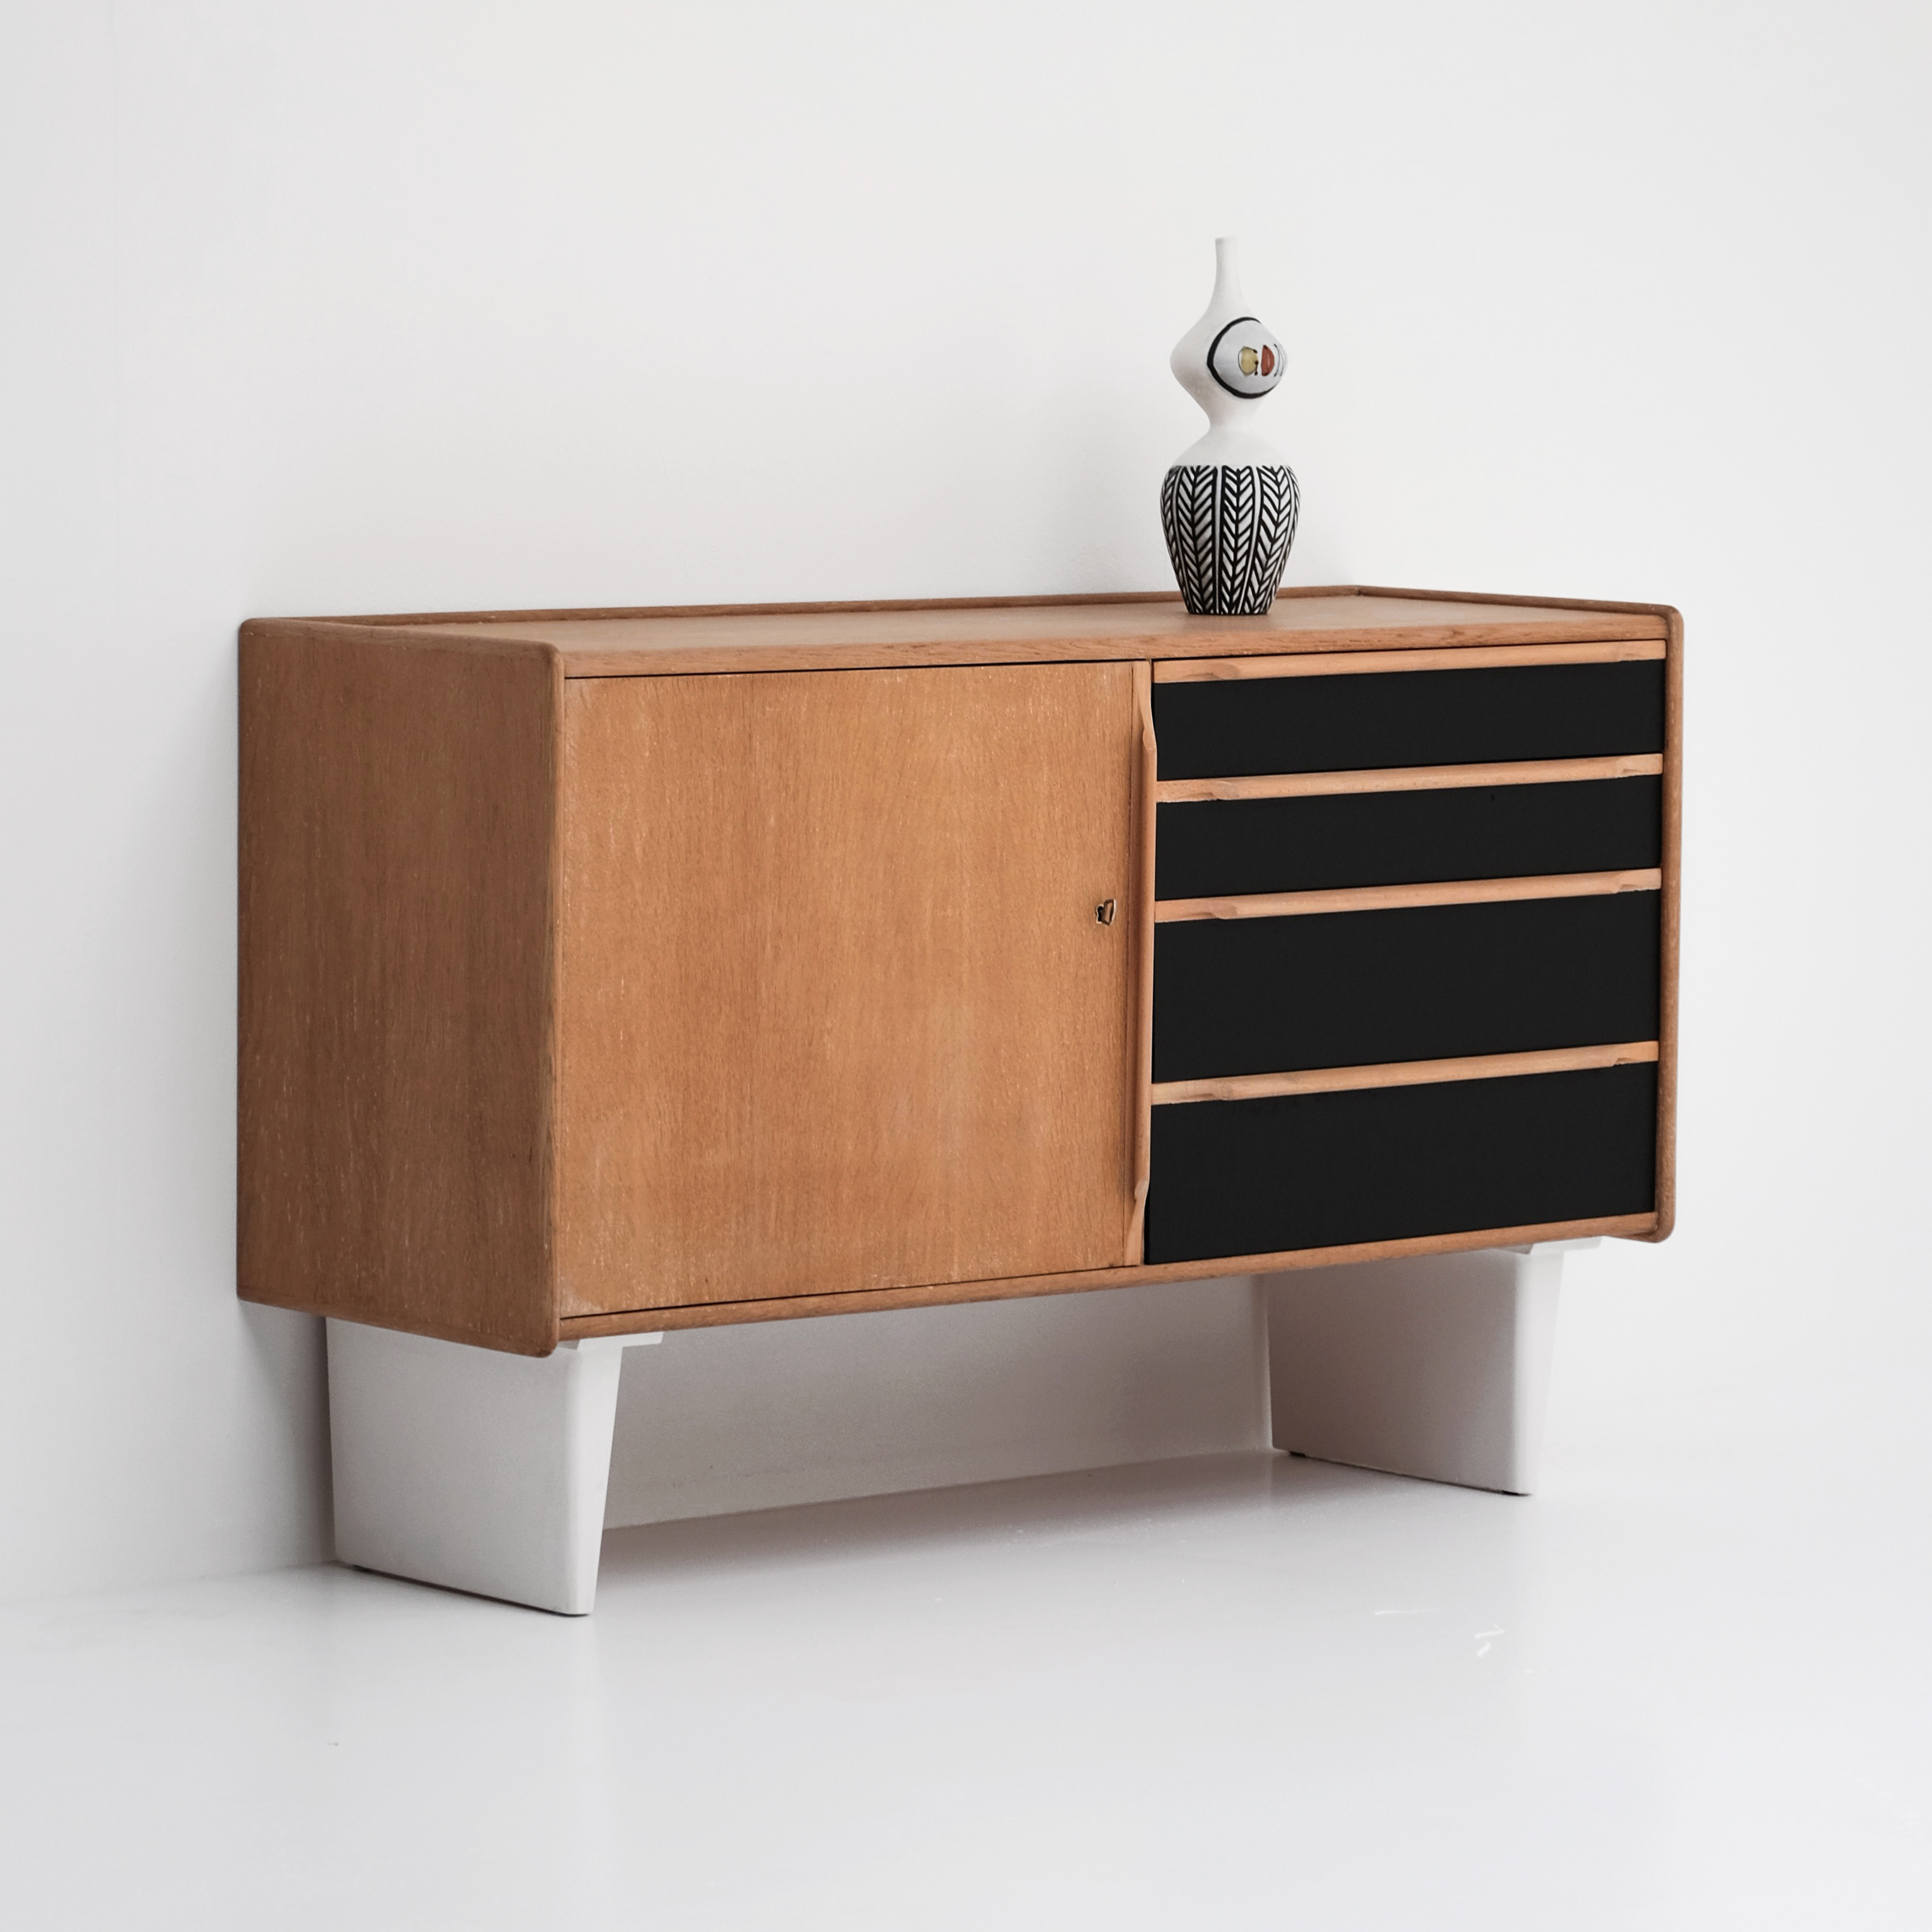 UMS_Pastoe_Sideboard_Cees_Braackman_1950s